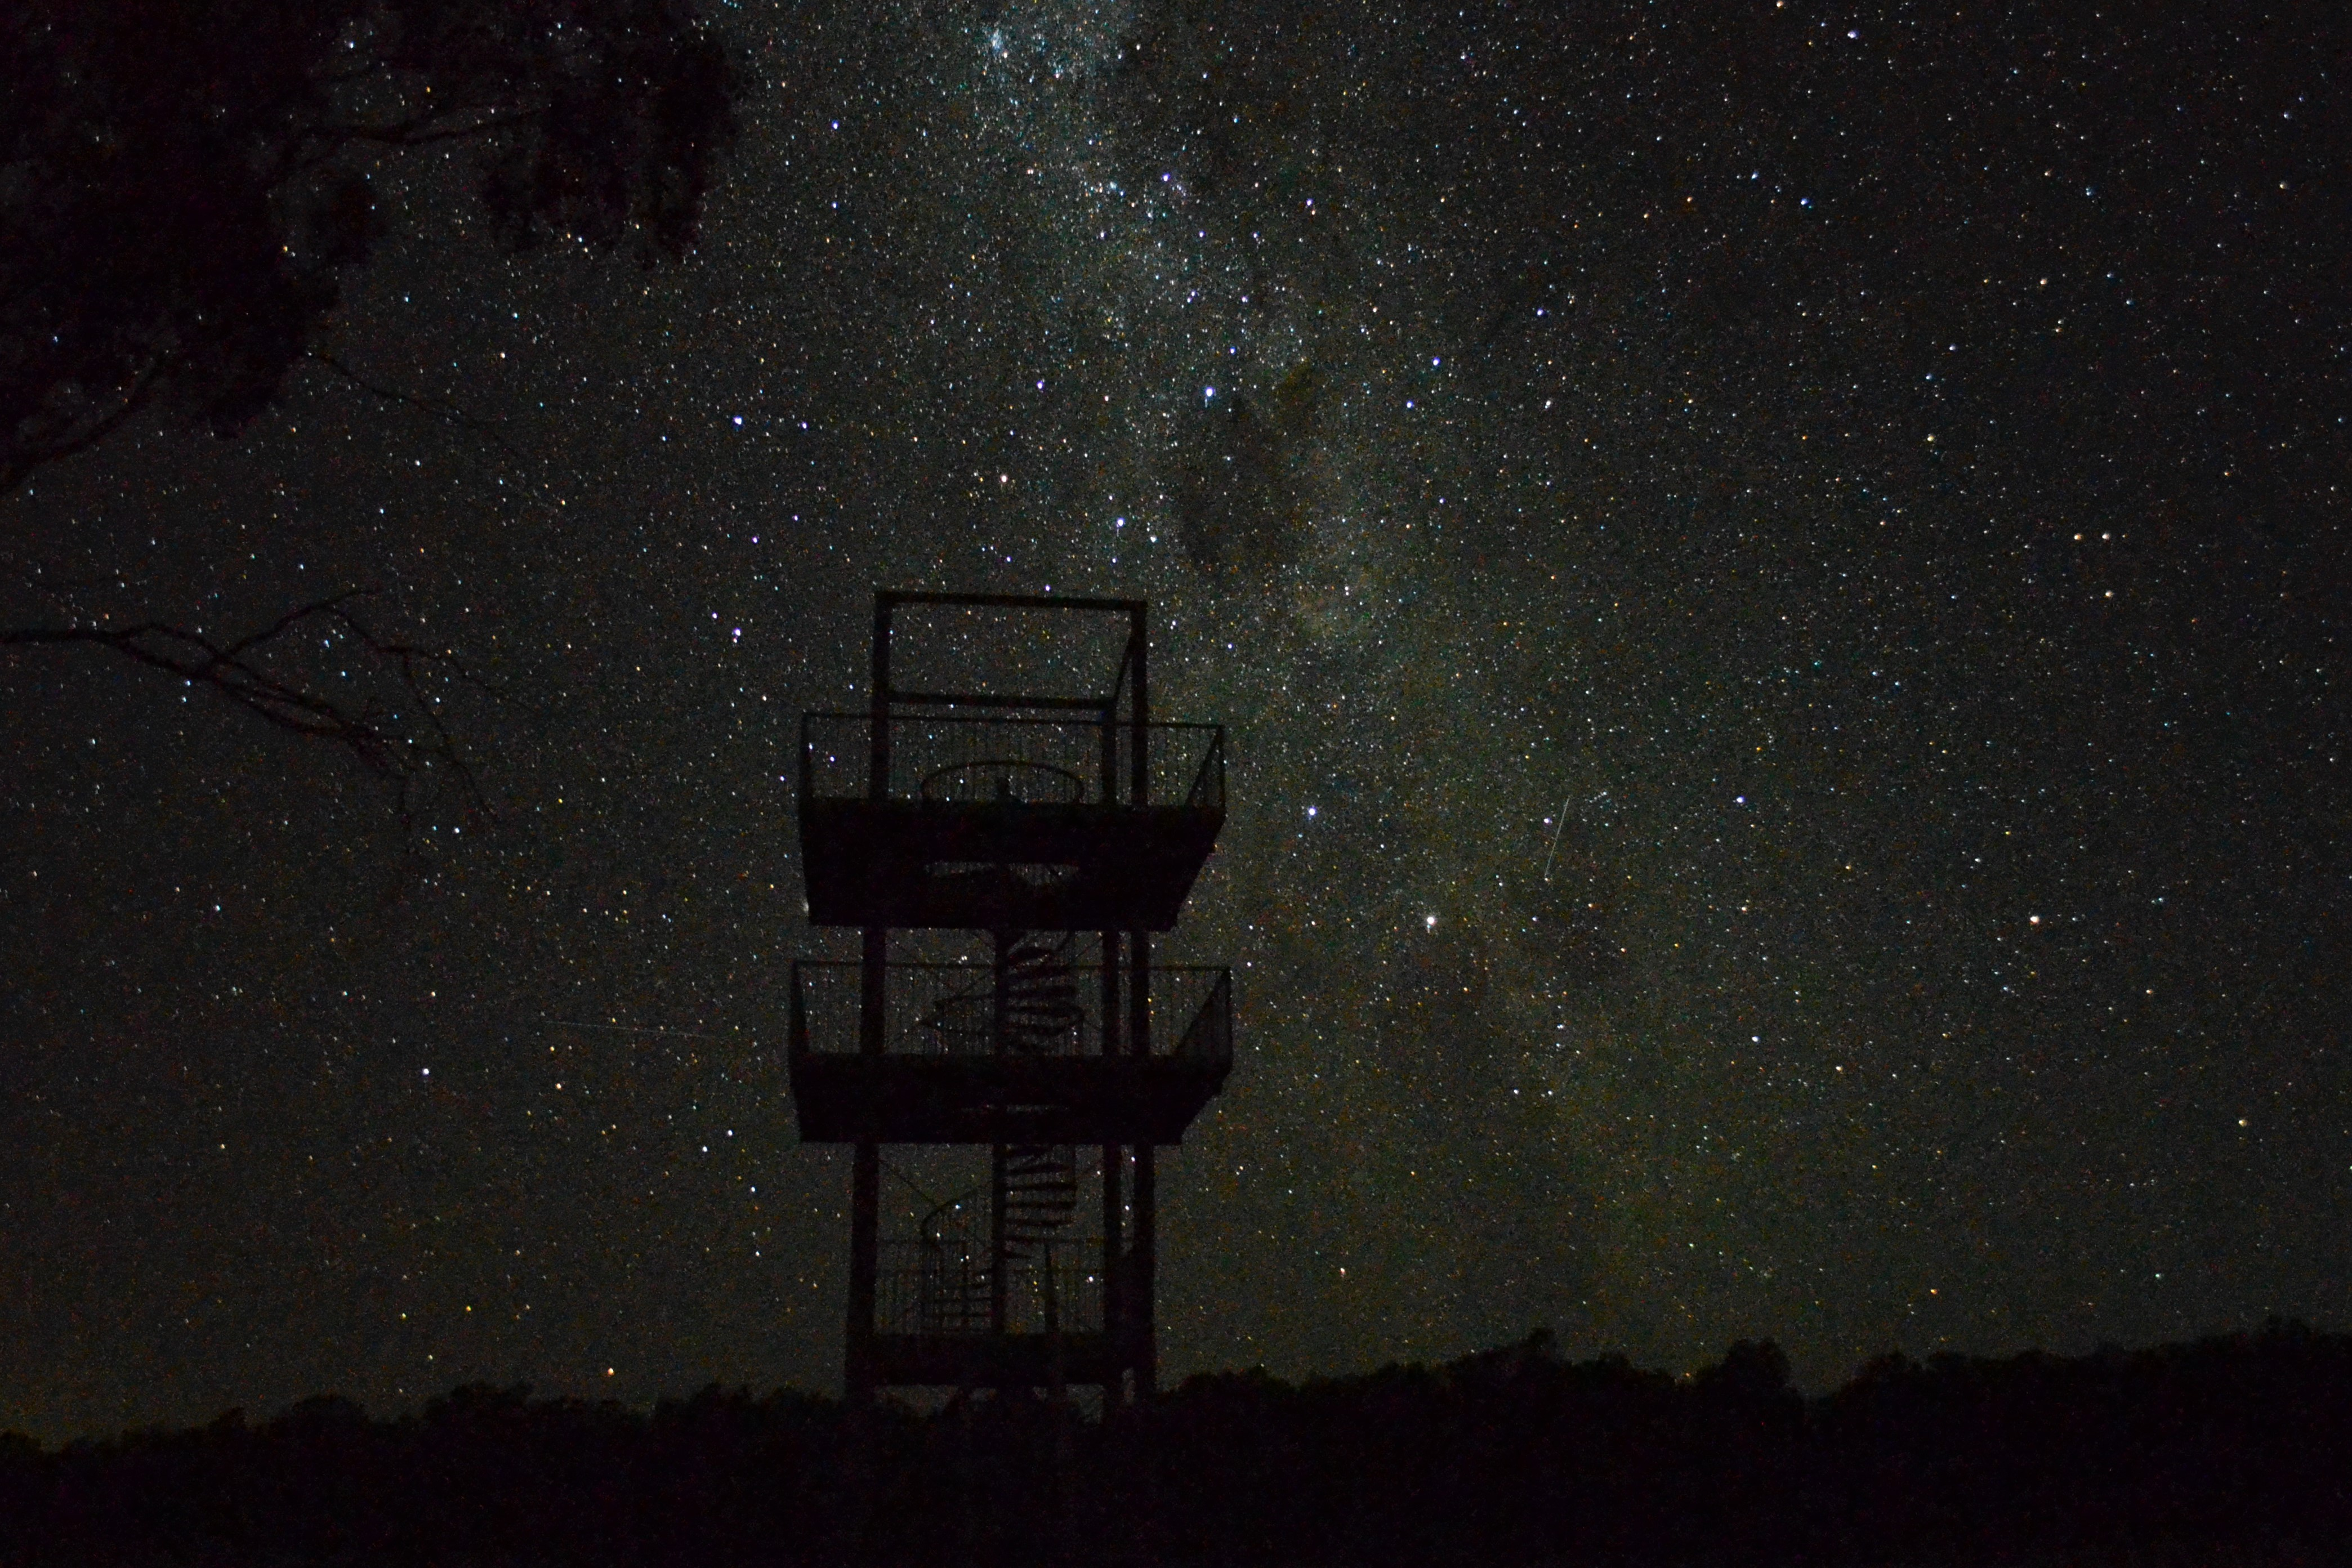 The Night Sky at Yarrabandai Creek Homes